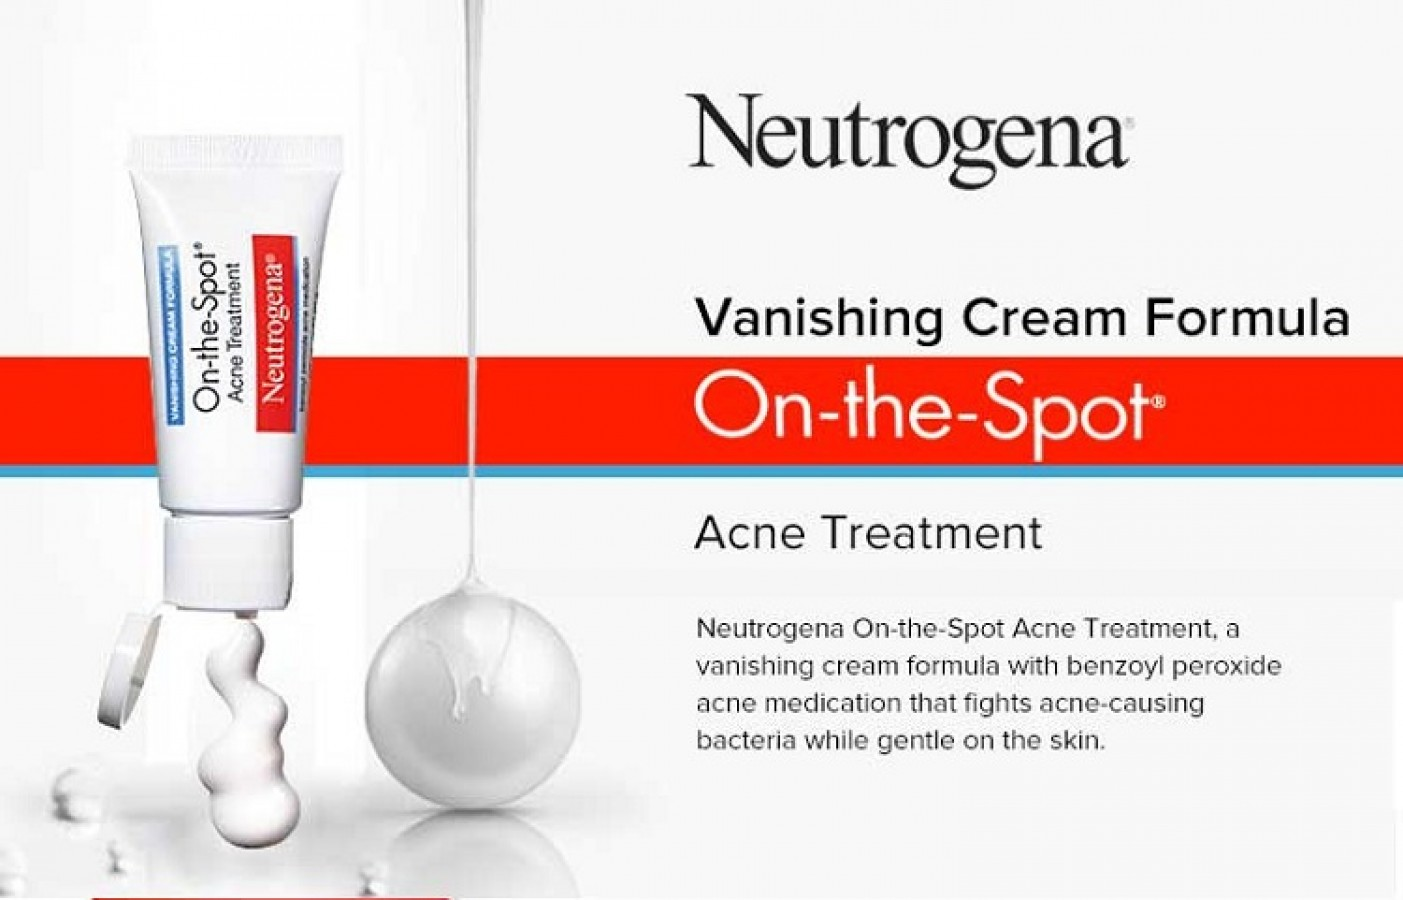 Kem Hỗ Trợ Trị Mụn Neutrogena On The Spot Acne Treatment